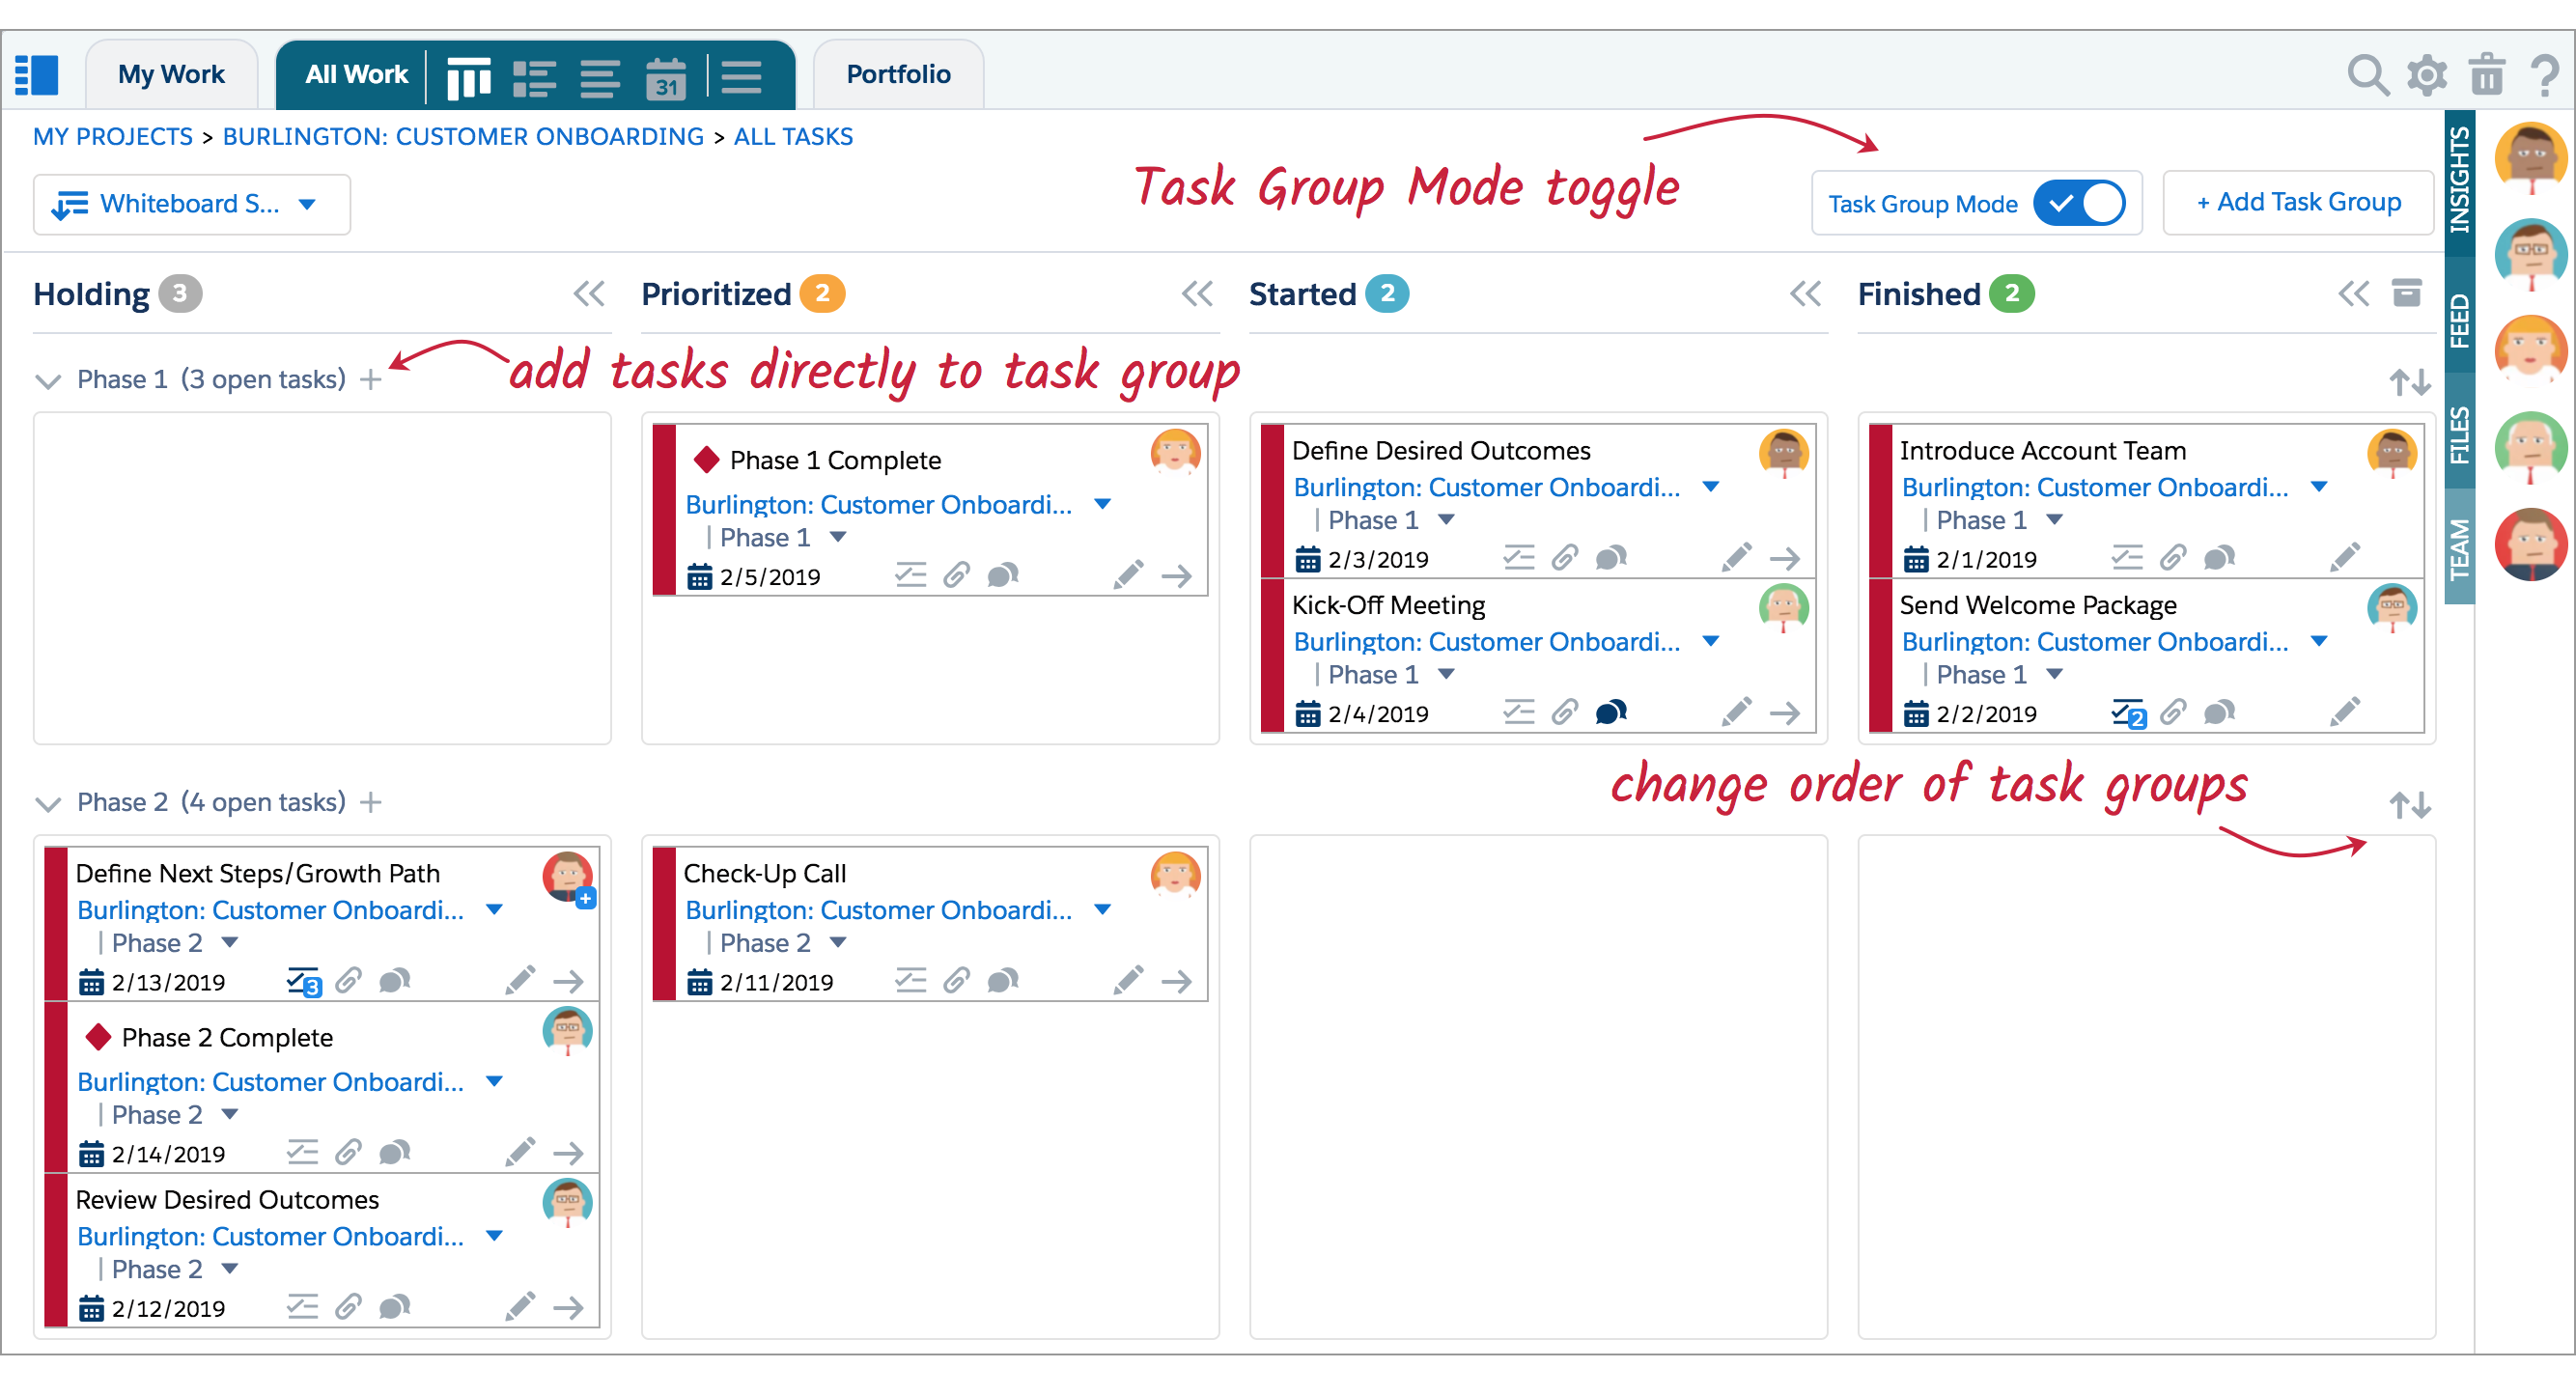 kanban_task_group_mode_march_19.png